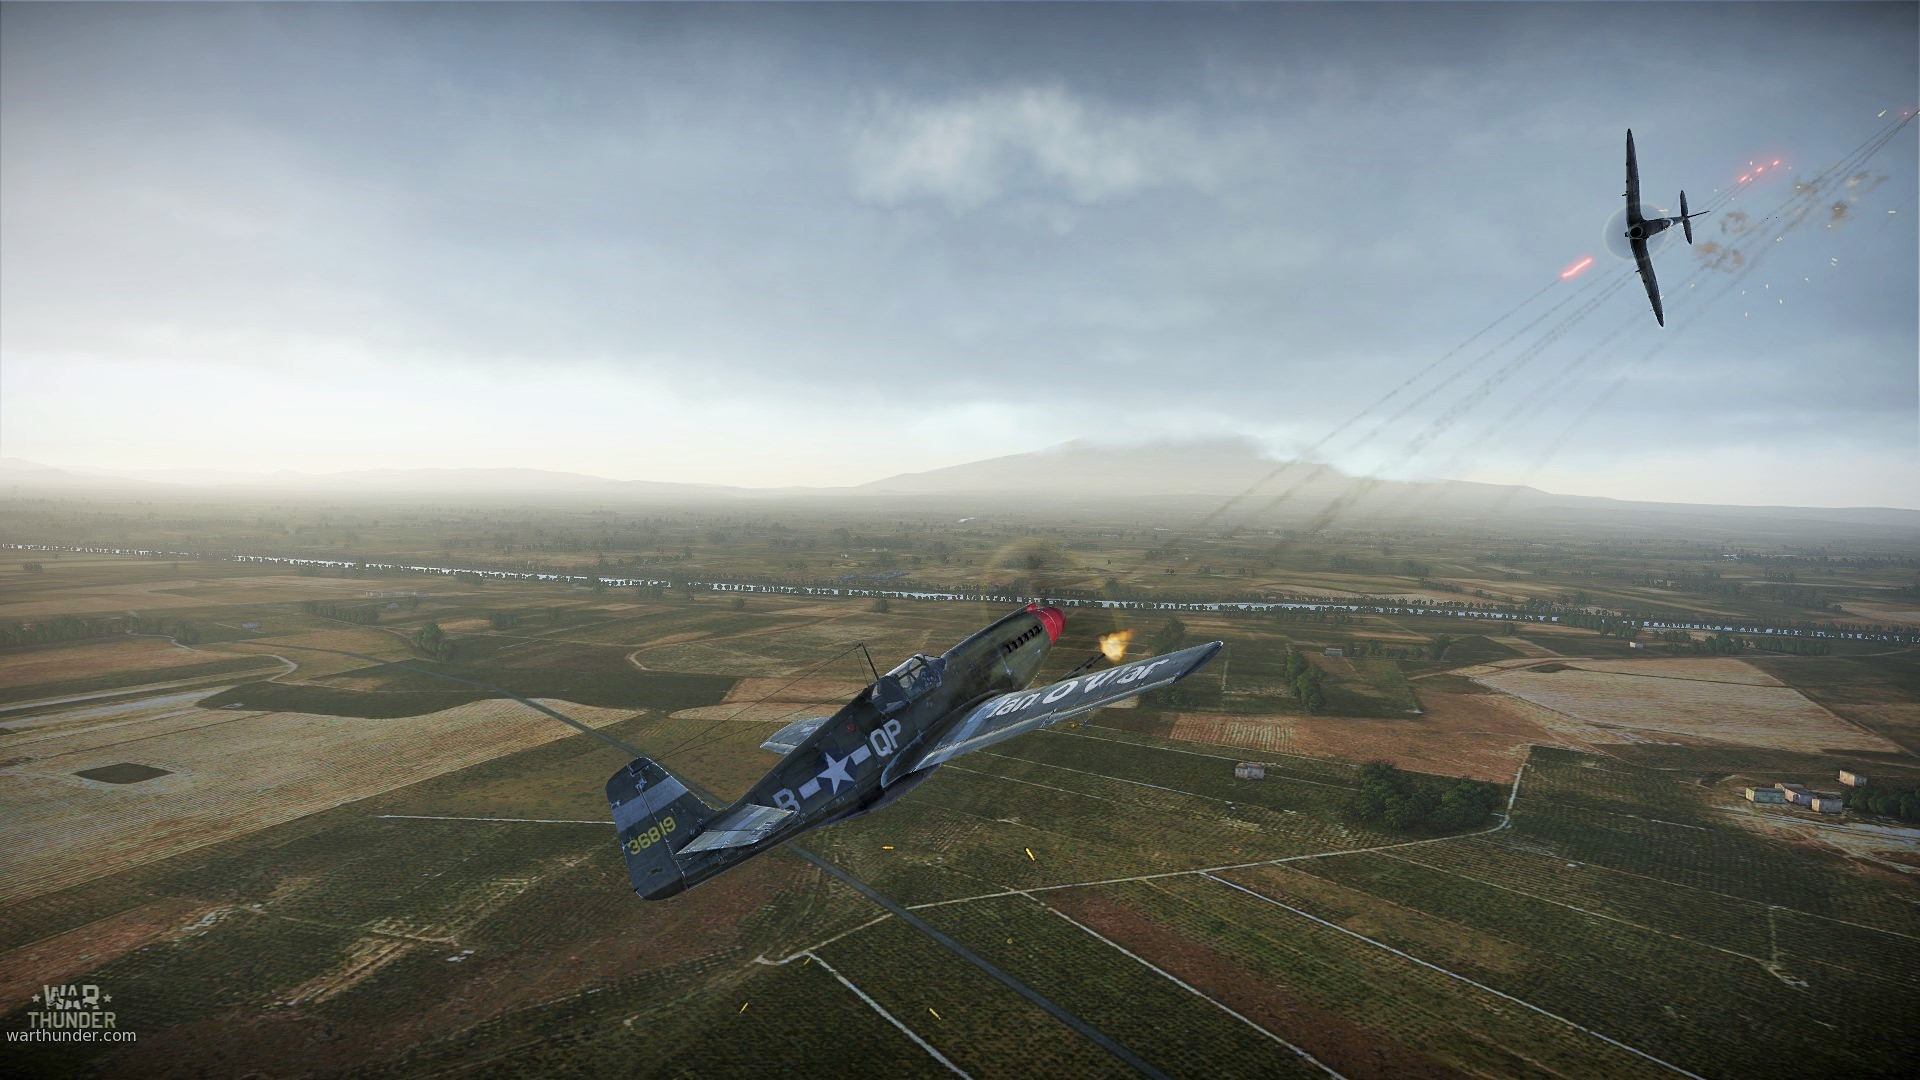 War thunder close call (2)